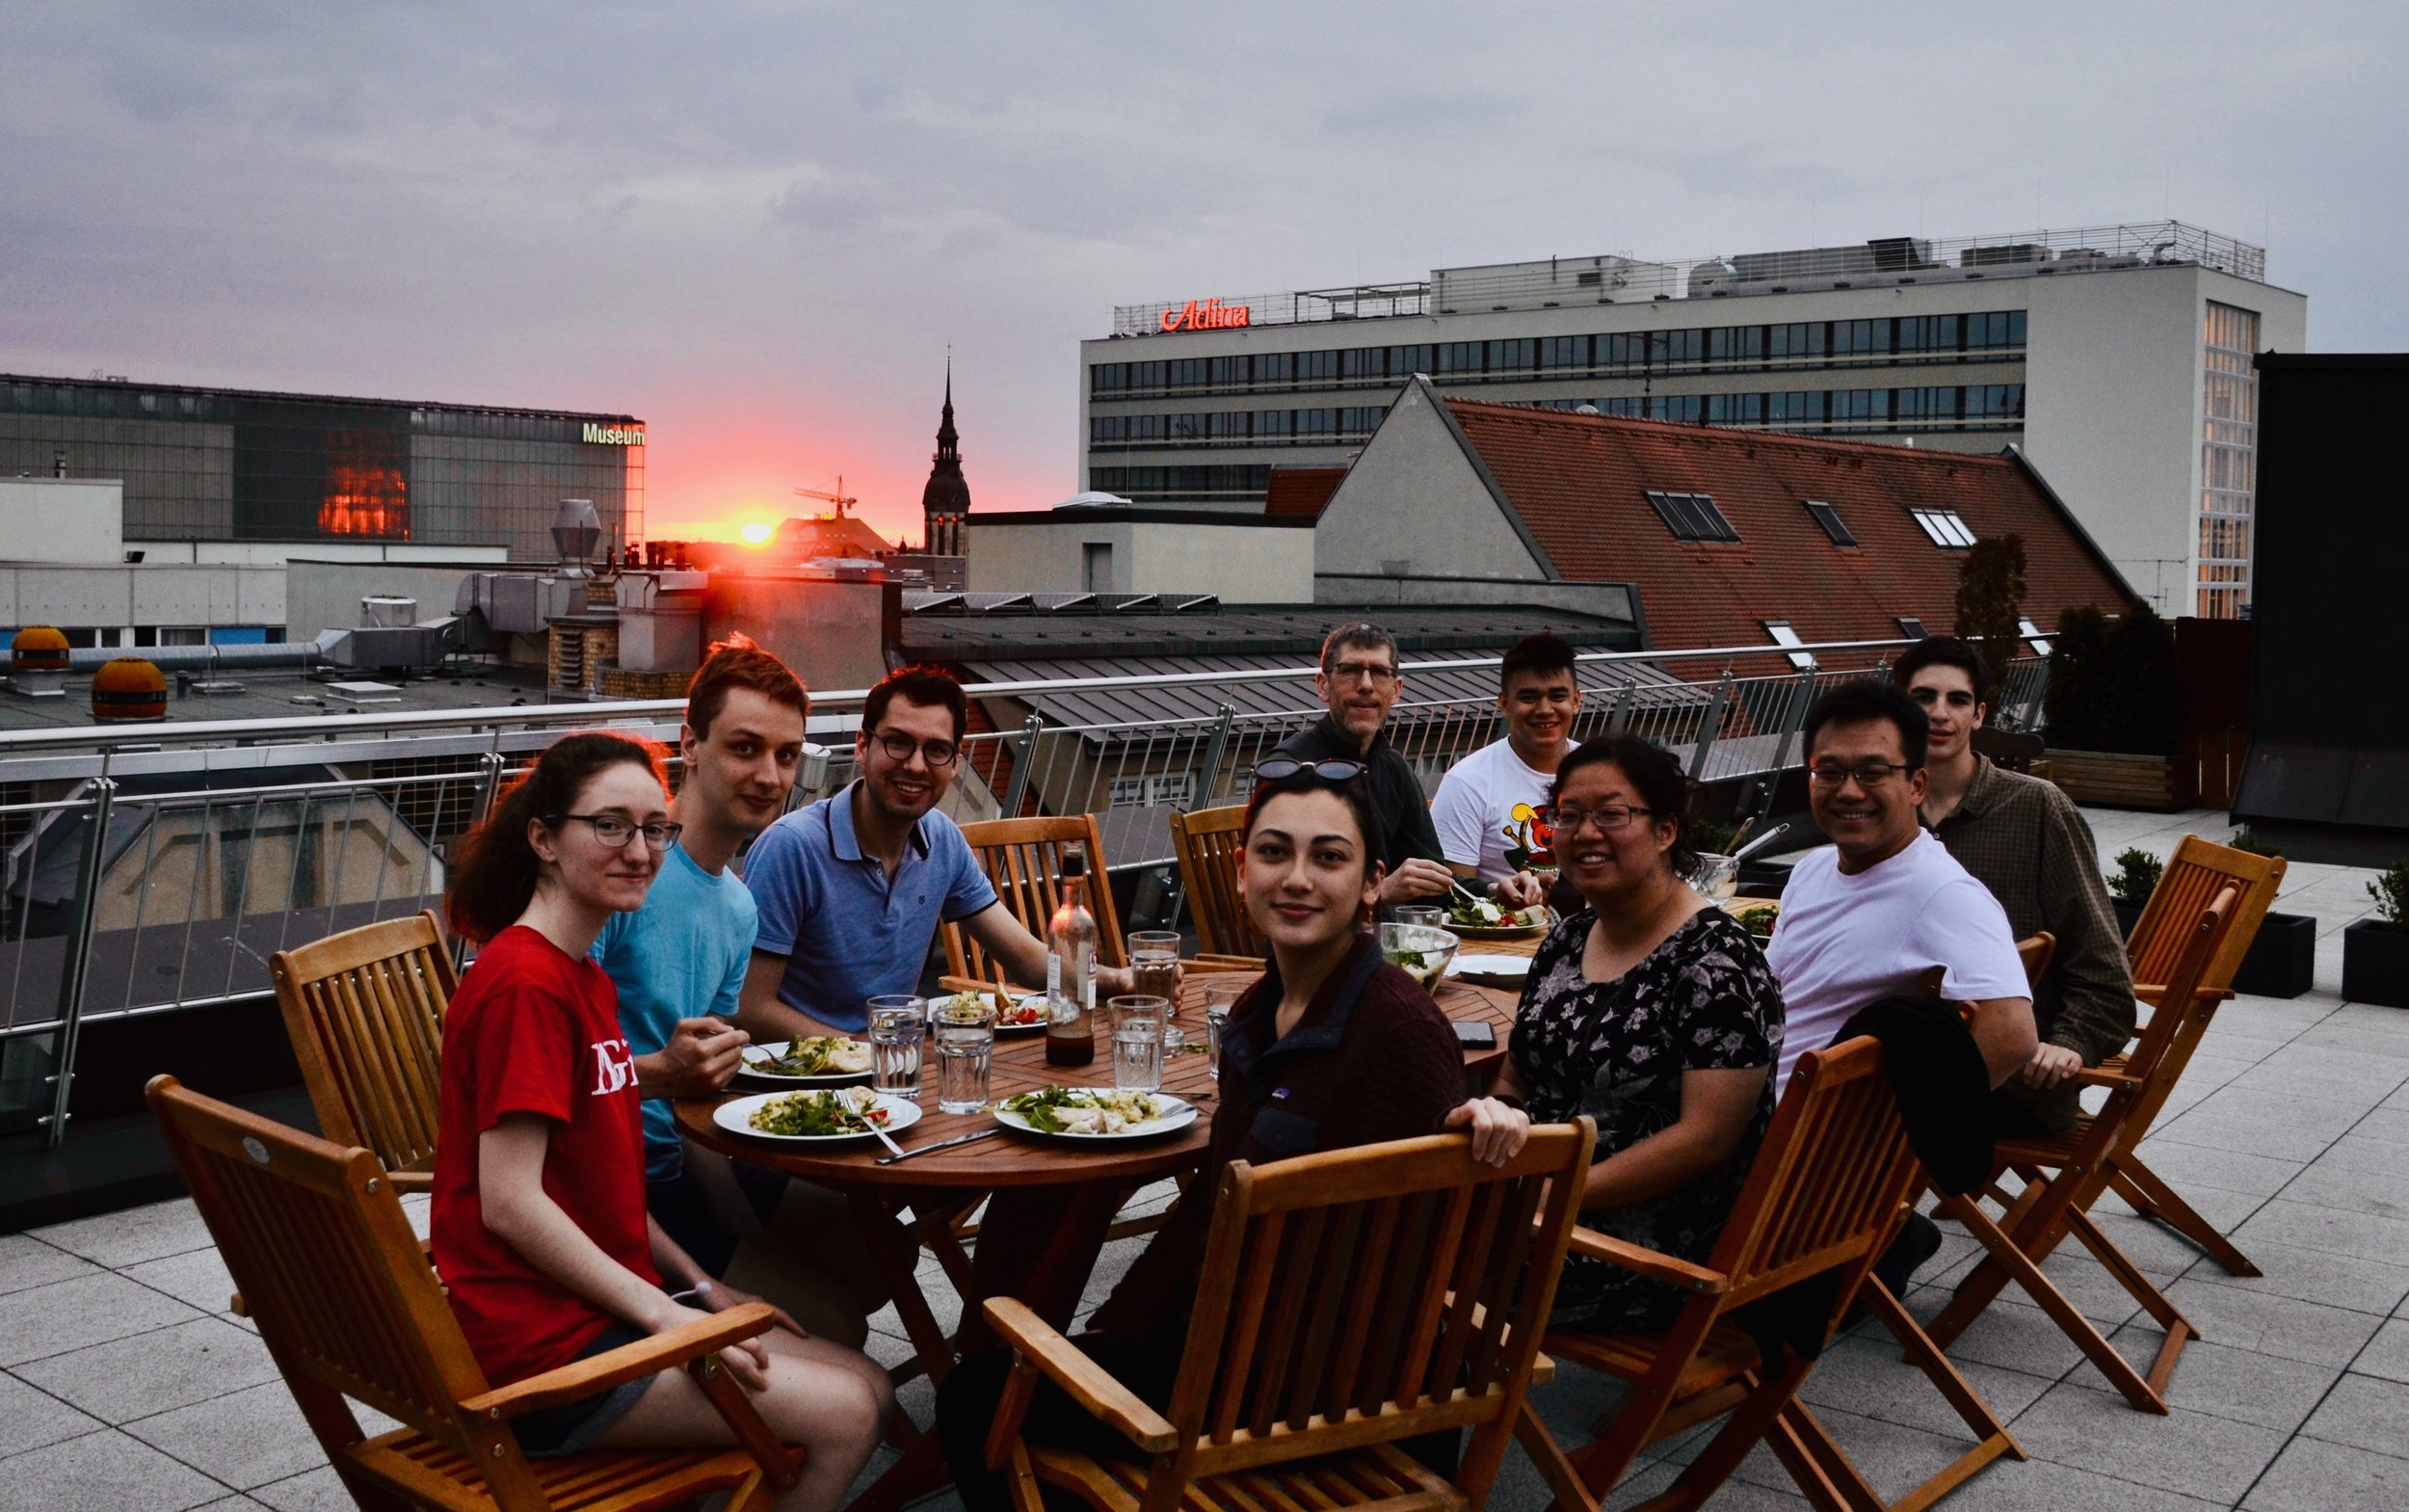 Dinner on the rooftop.